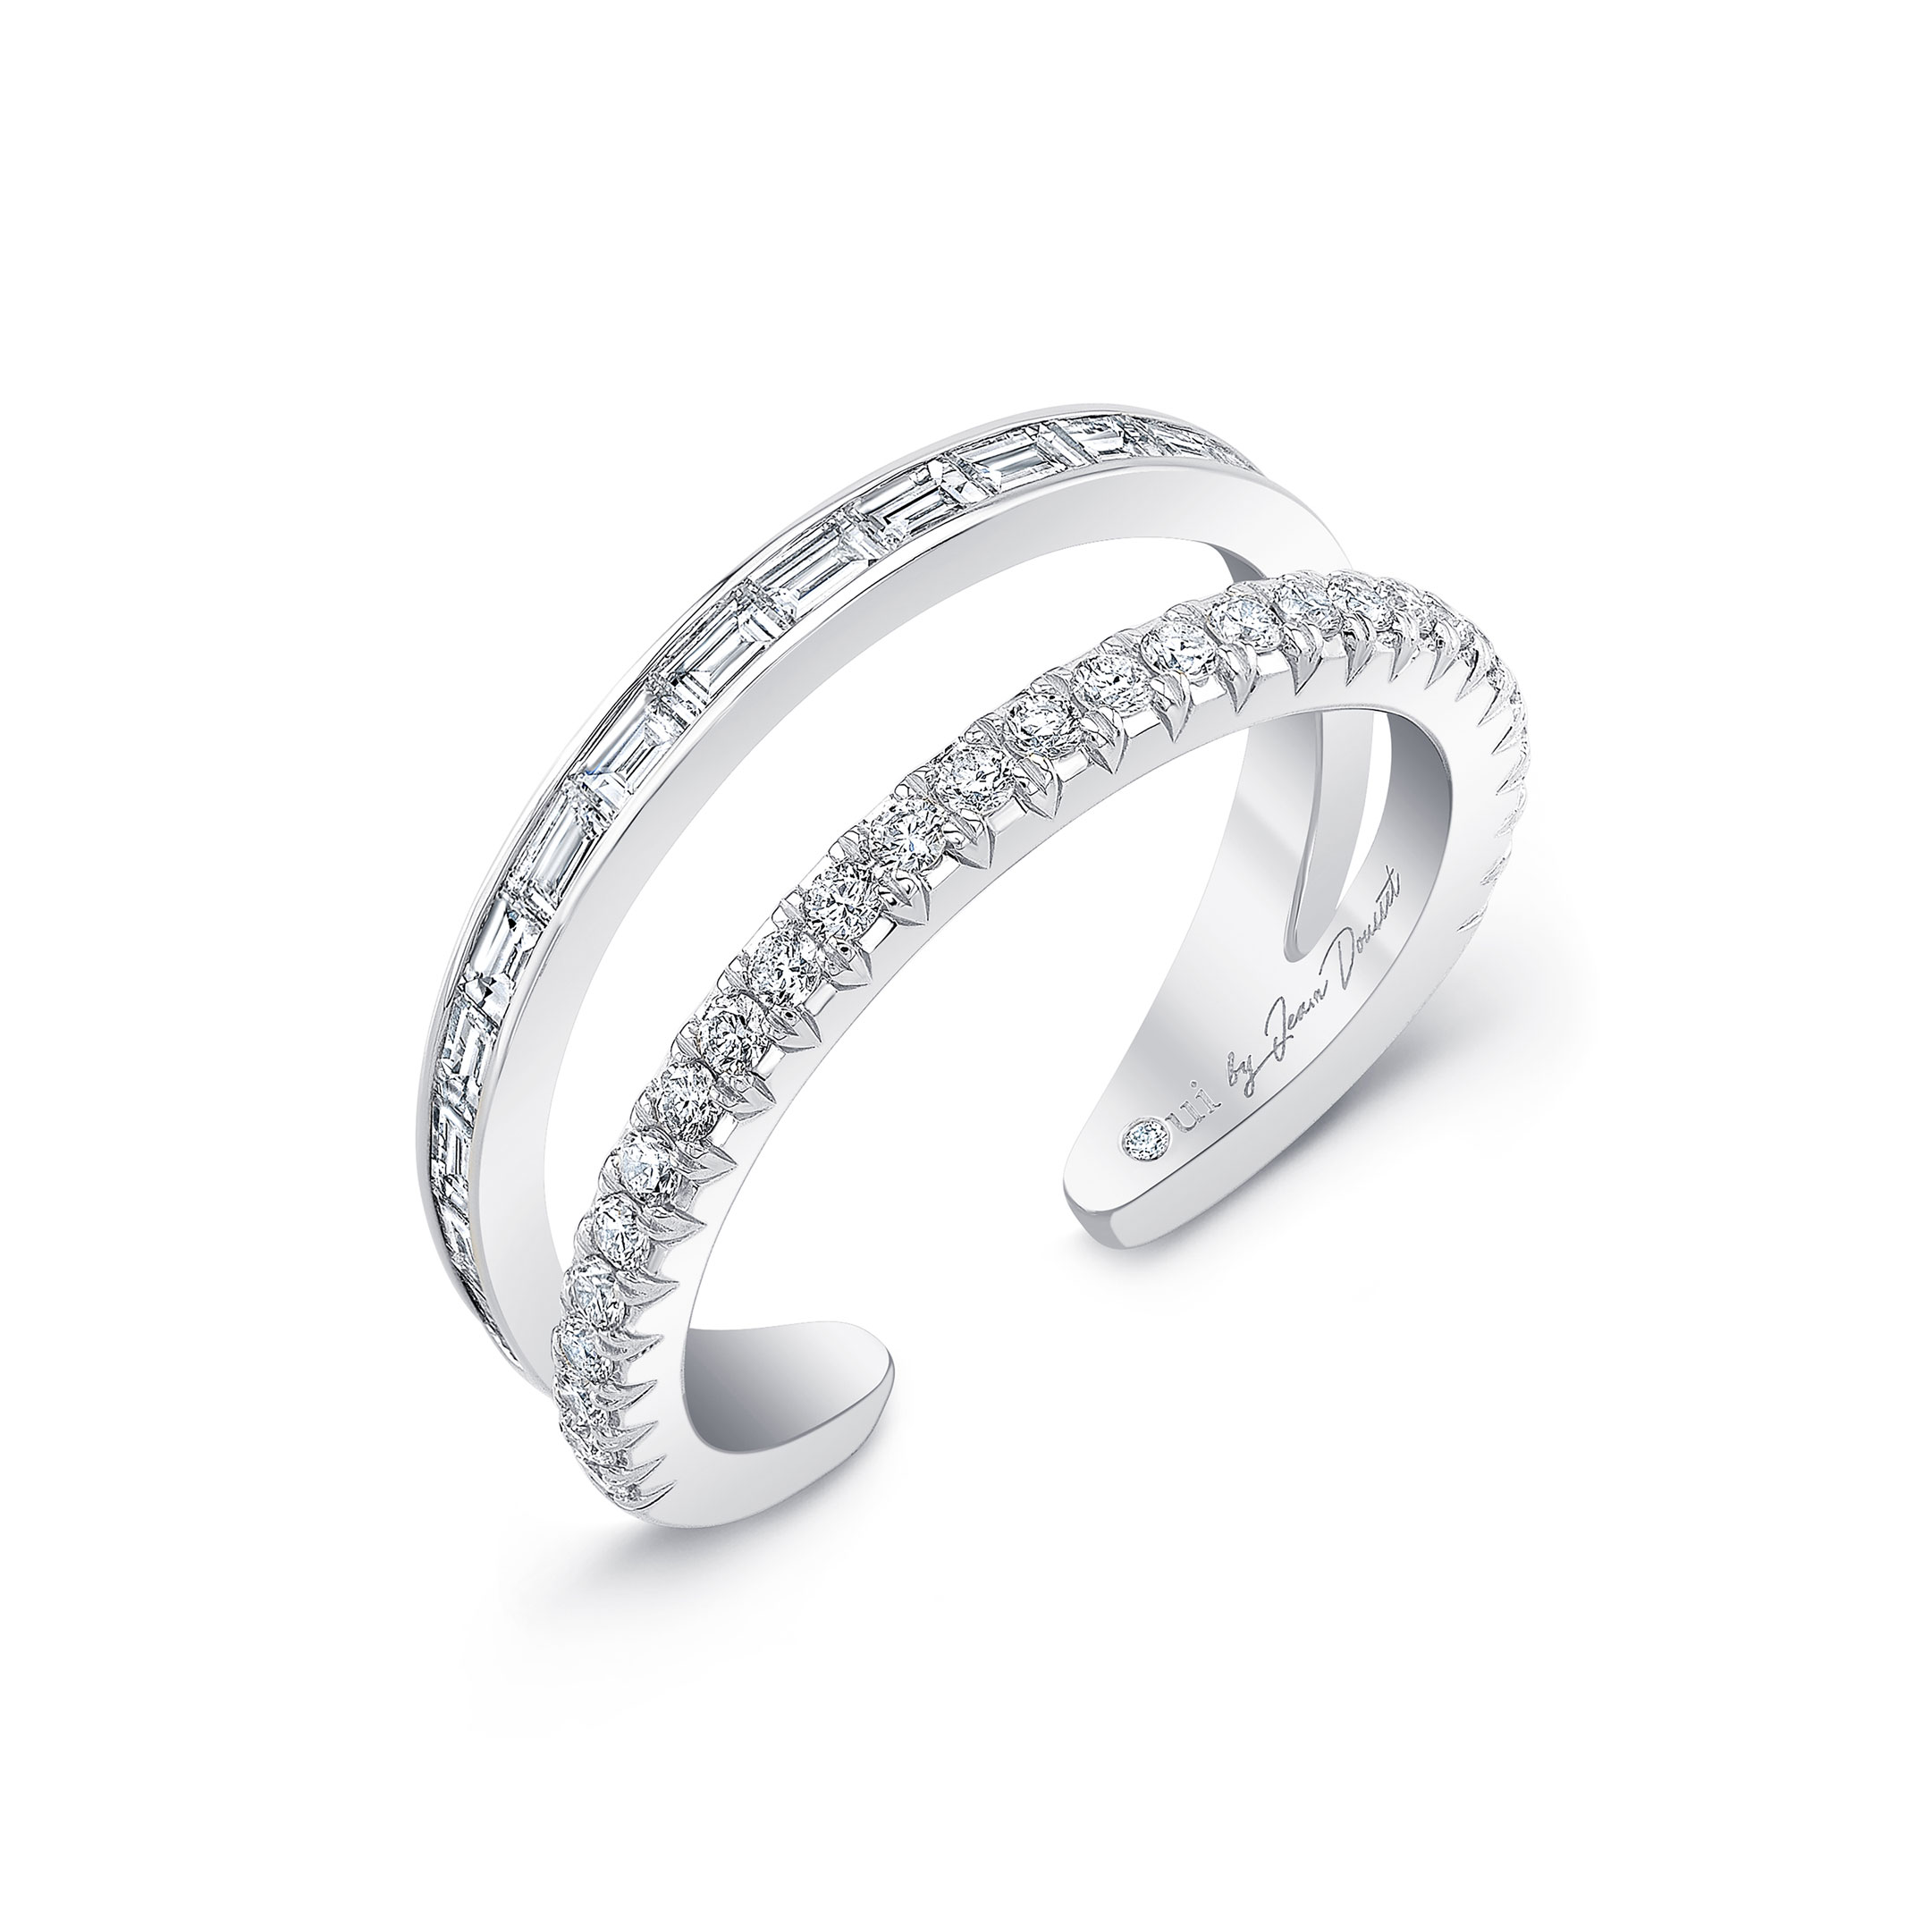 Baguette and Diamond Pavé Double Band Ring in 18k White Gold Profile View by Oui by Jean Dousset